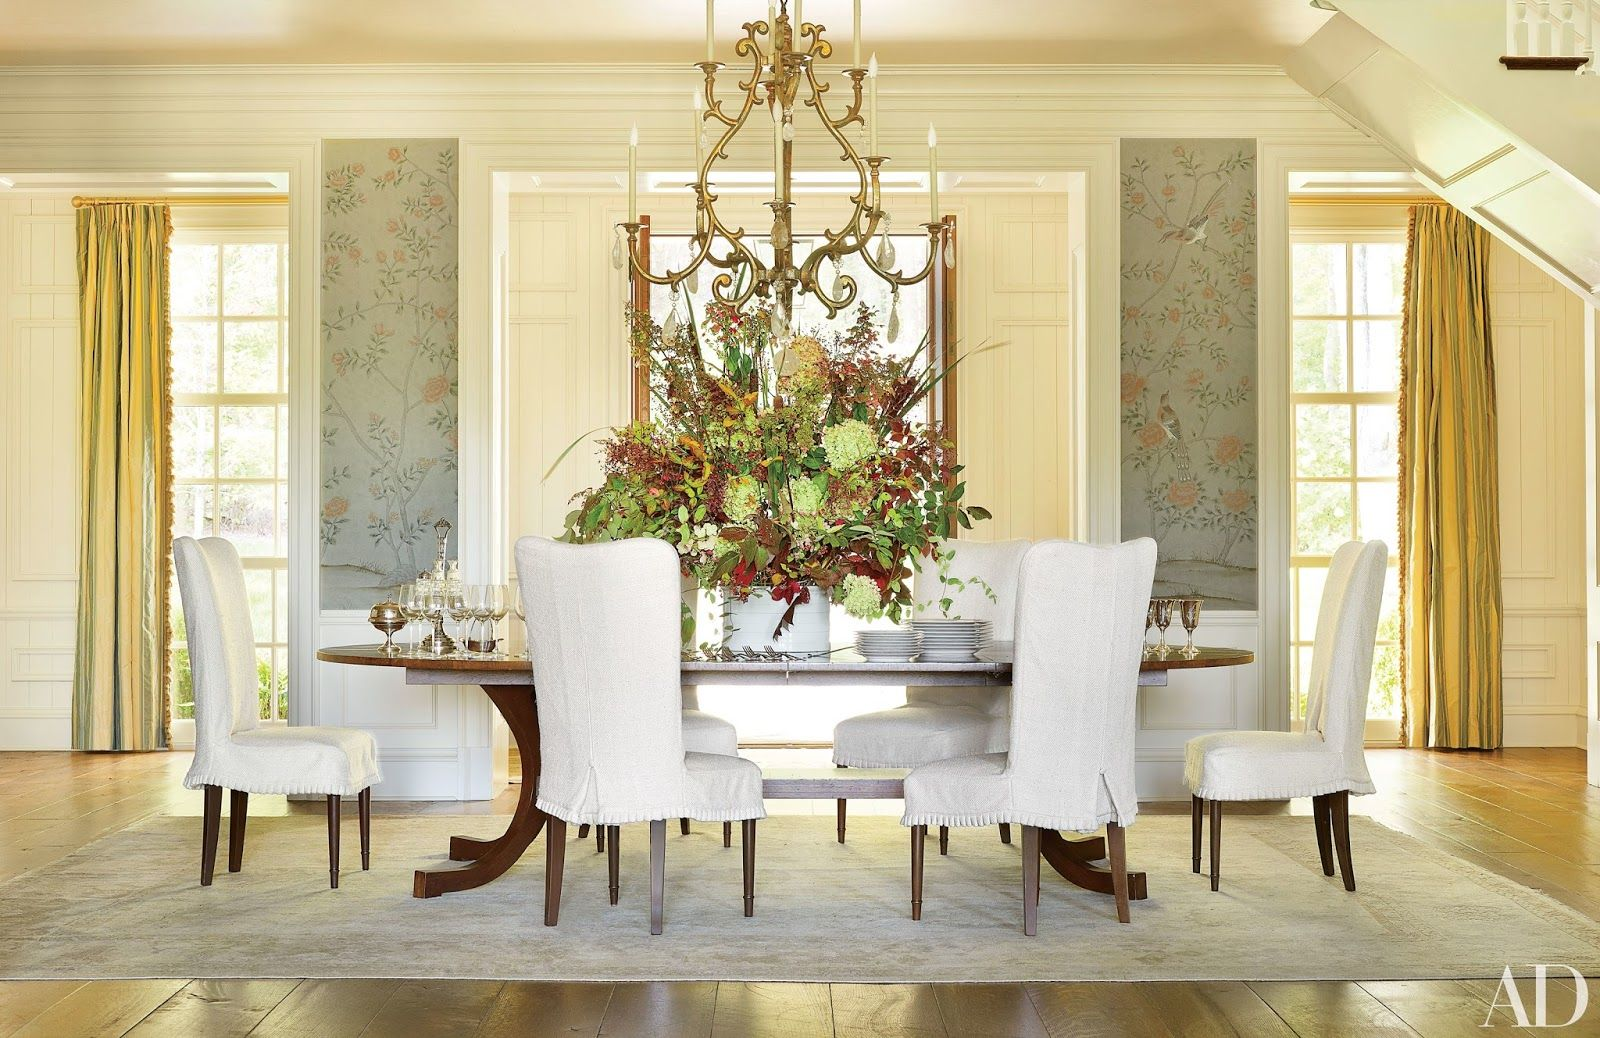 Merveilleux Amazing Dining Room Decor By AD100 Designers